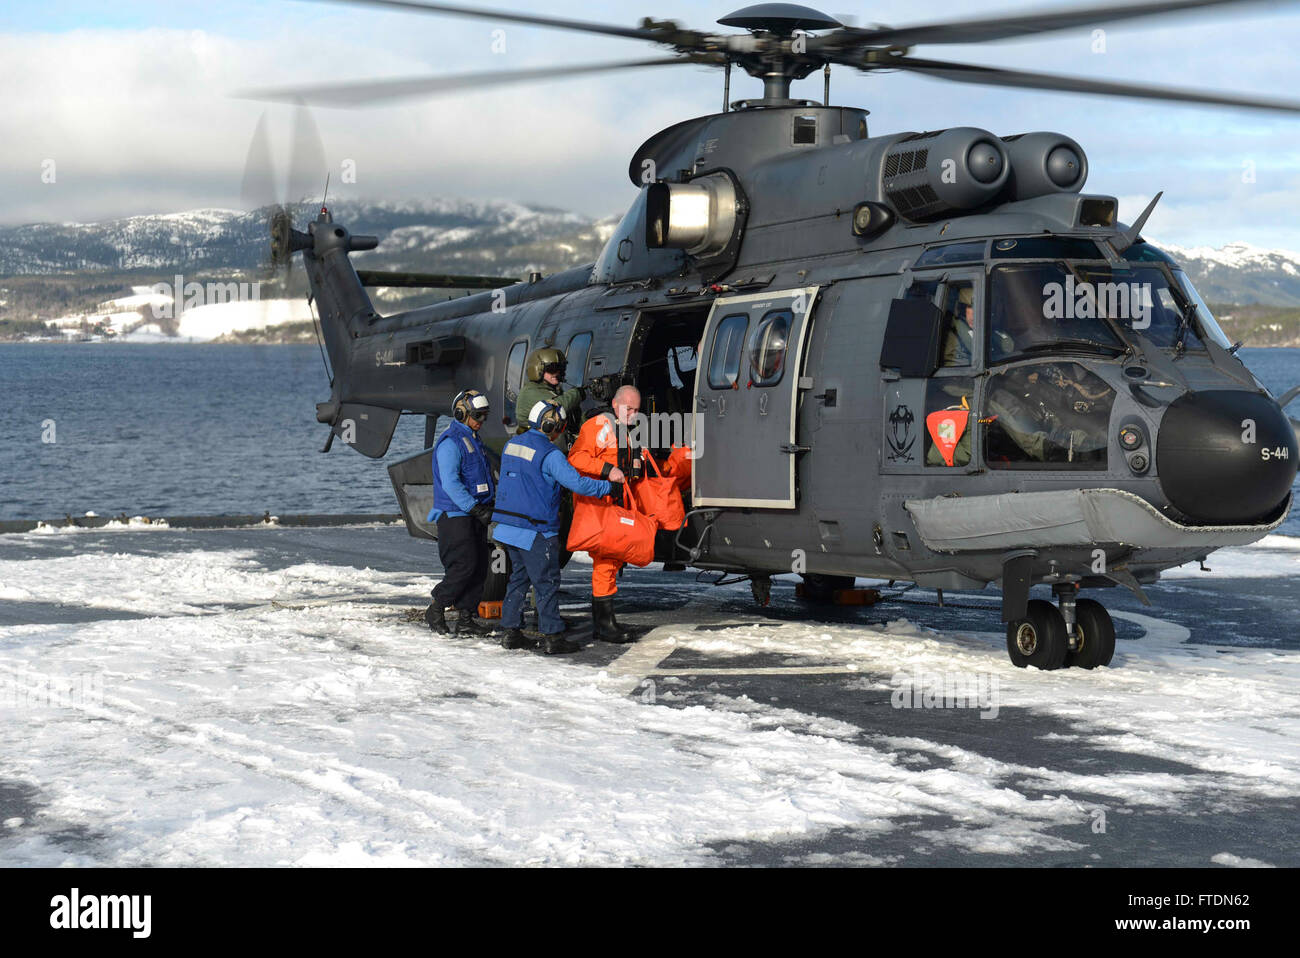 160308-N-AH771-154 NAMSOS FJORD, Norway (March 8, 2016) Dutch Naval officers come aboard the Whidbey Island-class Stock Photo